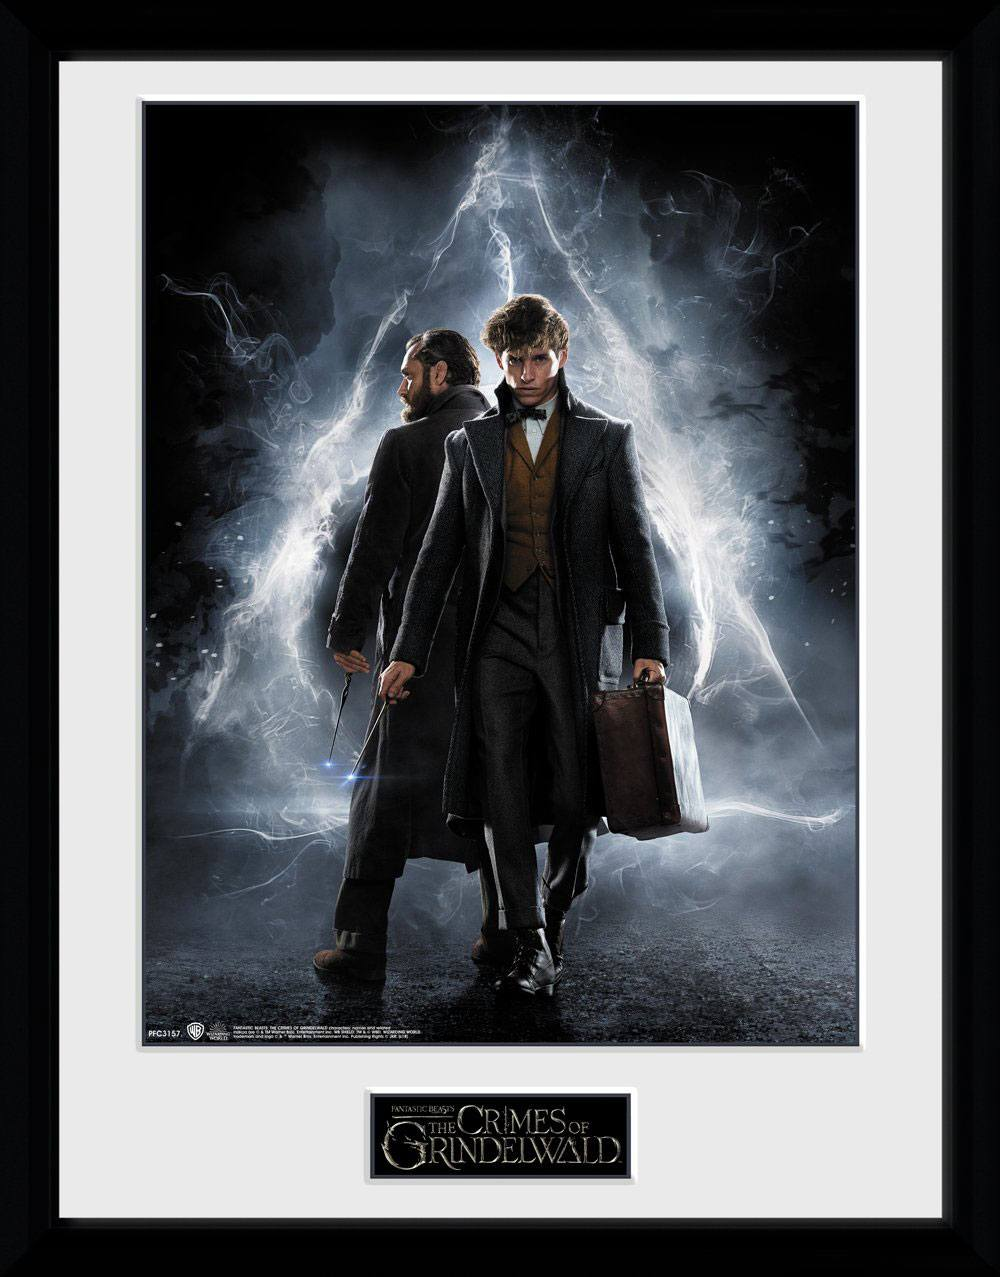 Fantastic Beasts 2 Framed Poster One Sheet 45 x 34 cm